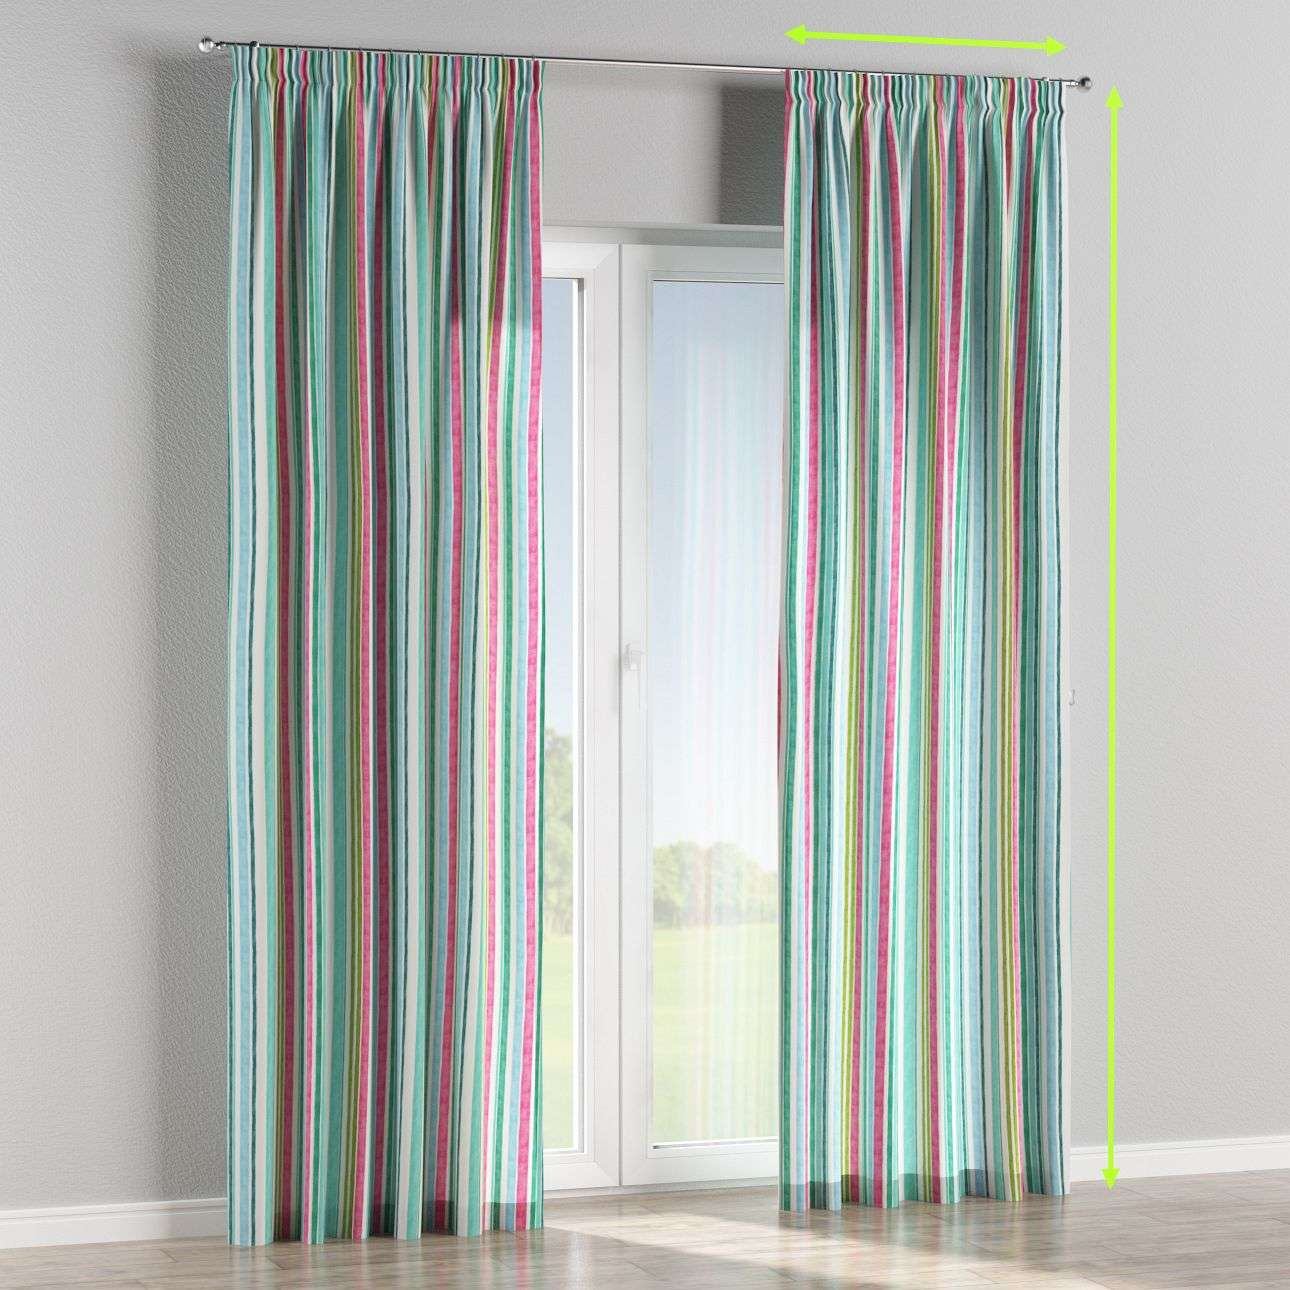 Pencil pleat lined curtains in collection Monet, fabric: 140-03